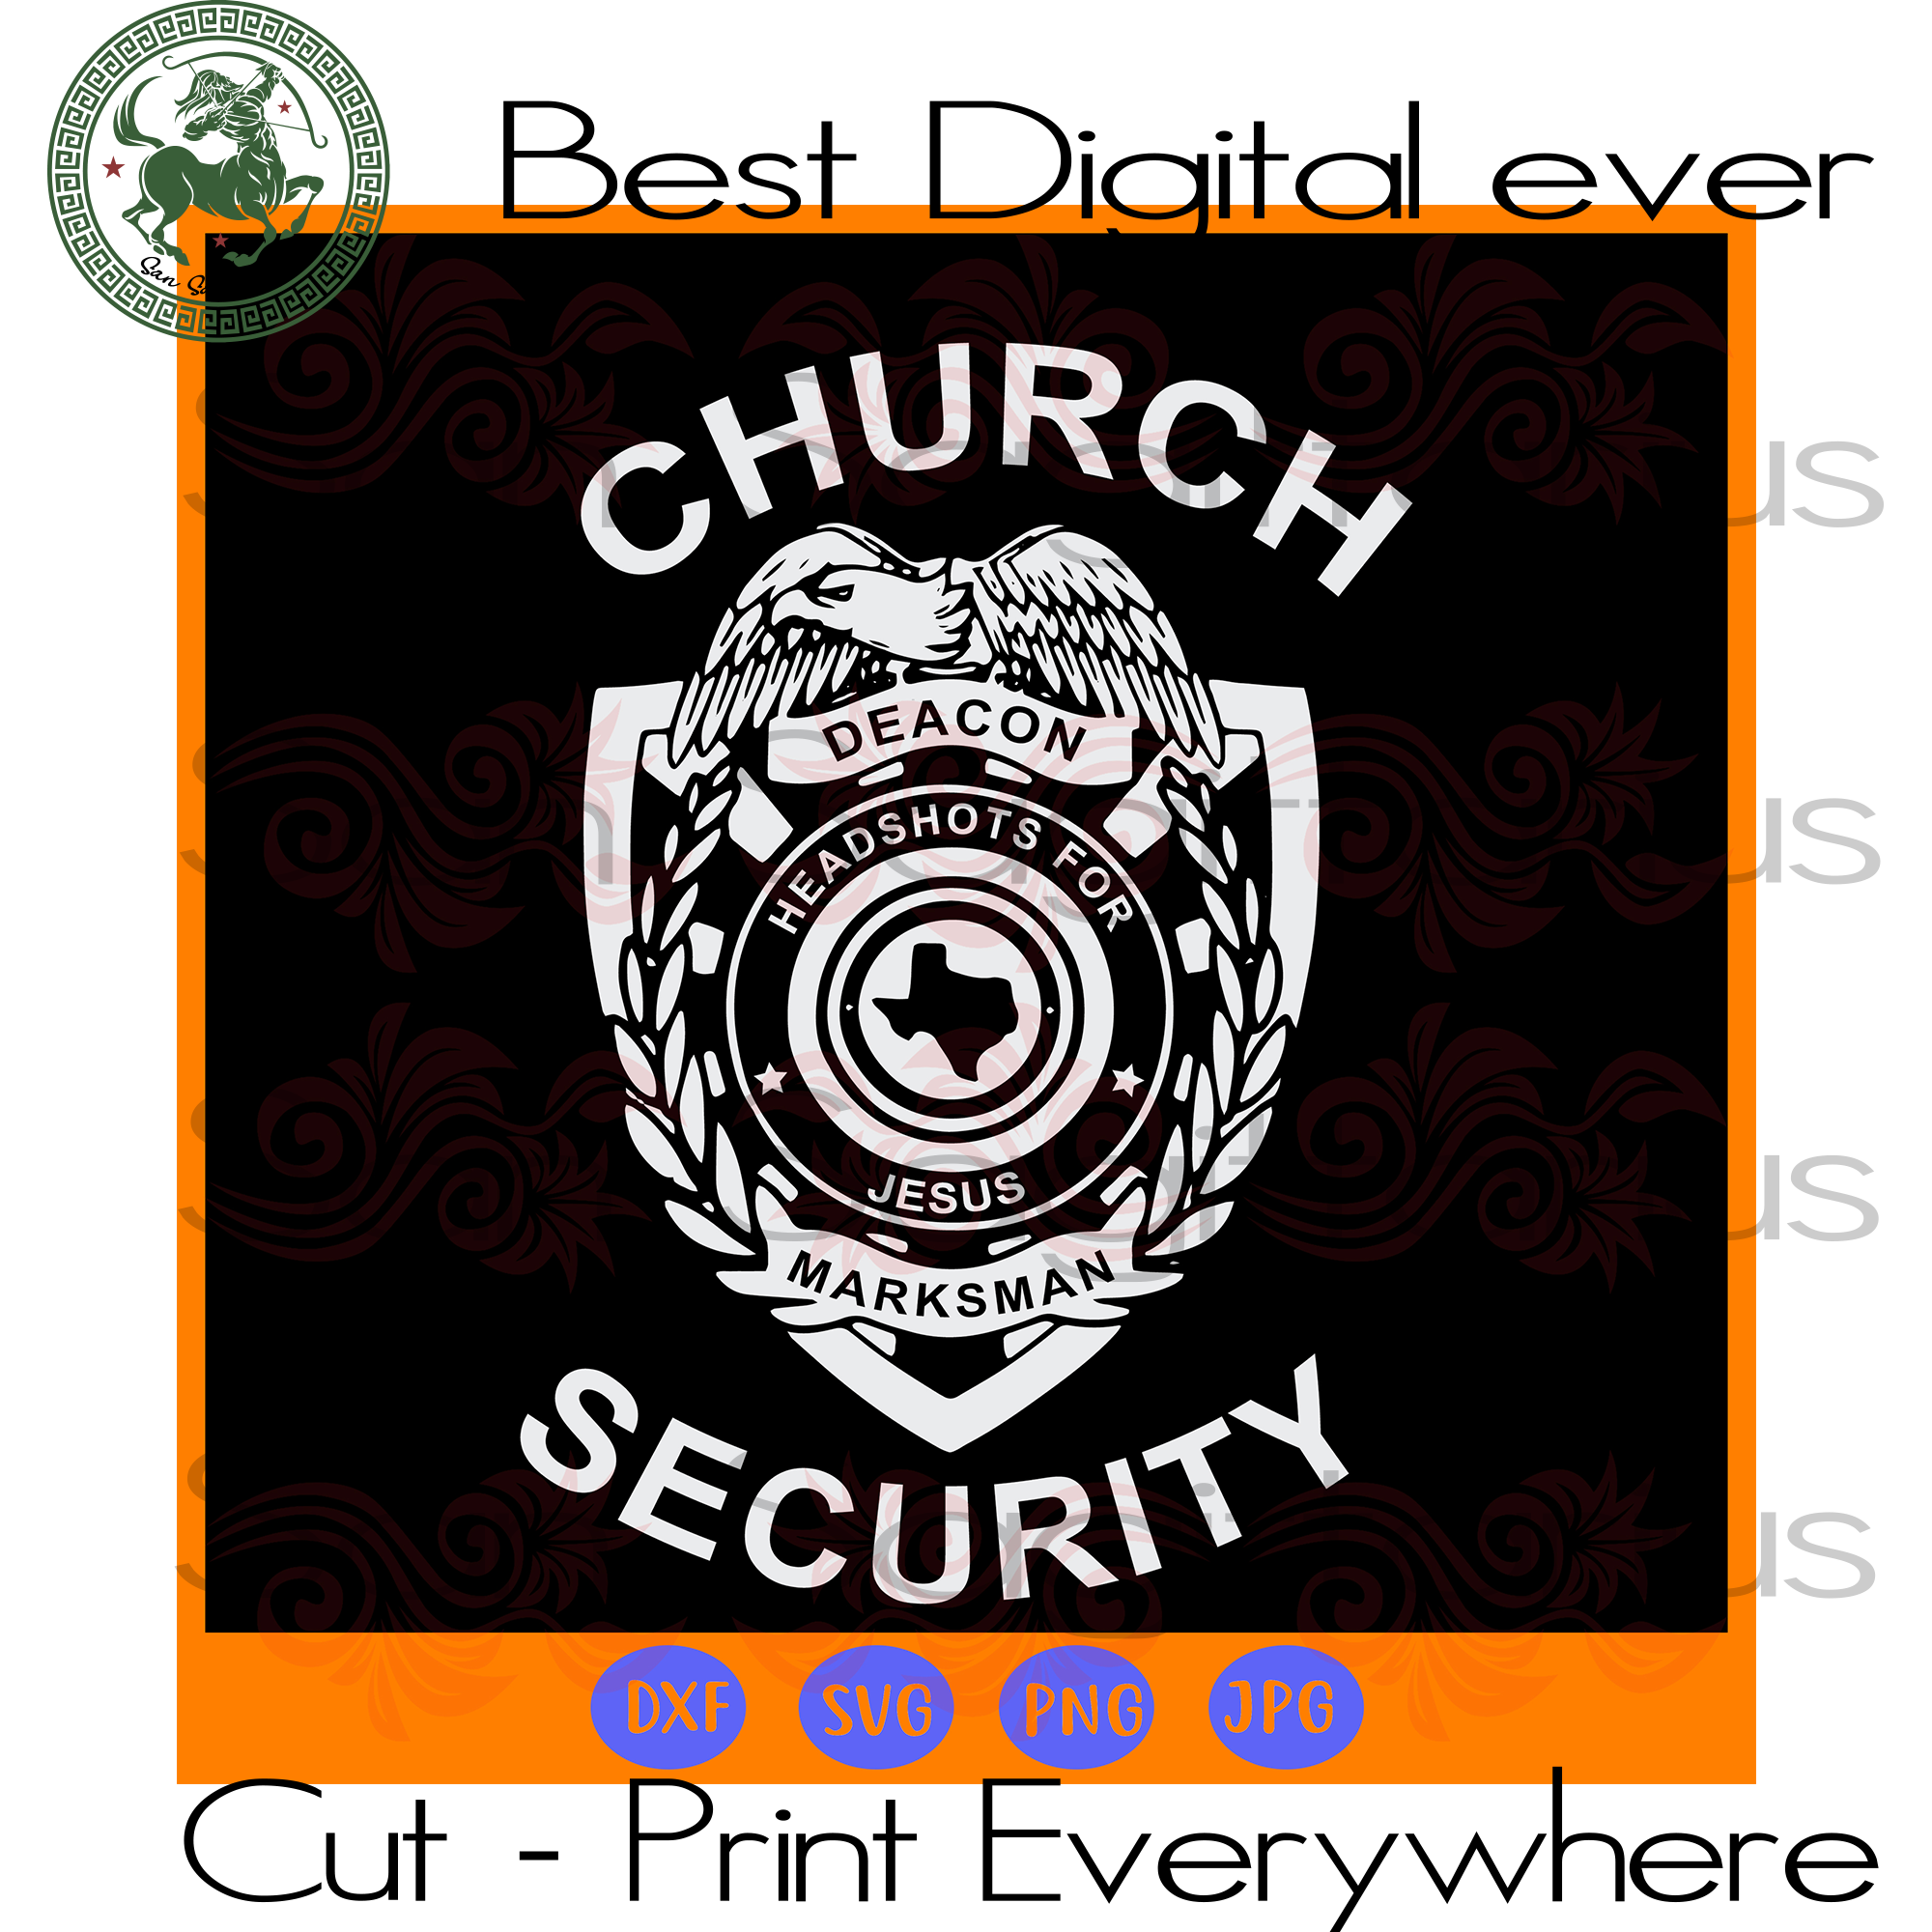 Church Security Deacon Headshots For Jesus Texans Map Lover SVG Files For Cricut Silhouette Instant Download | San Sagittarius